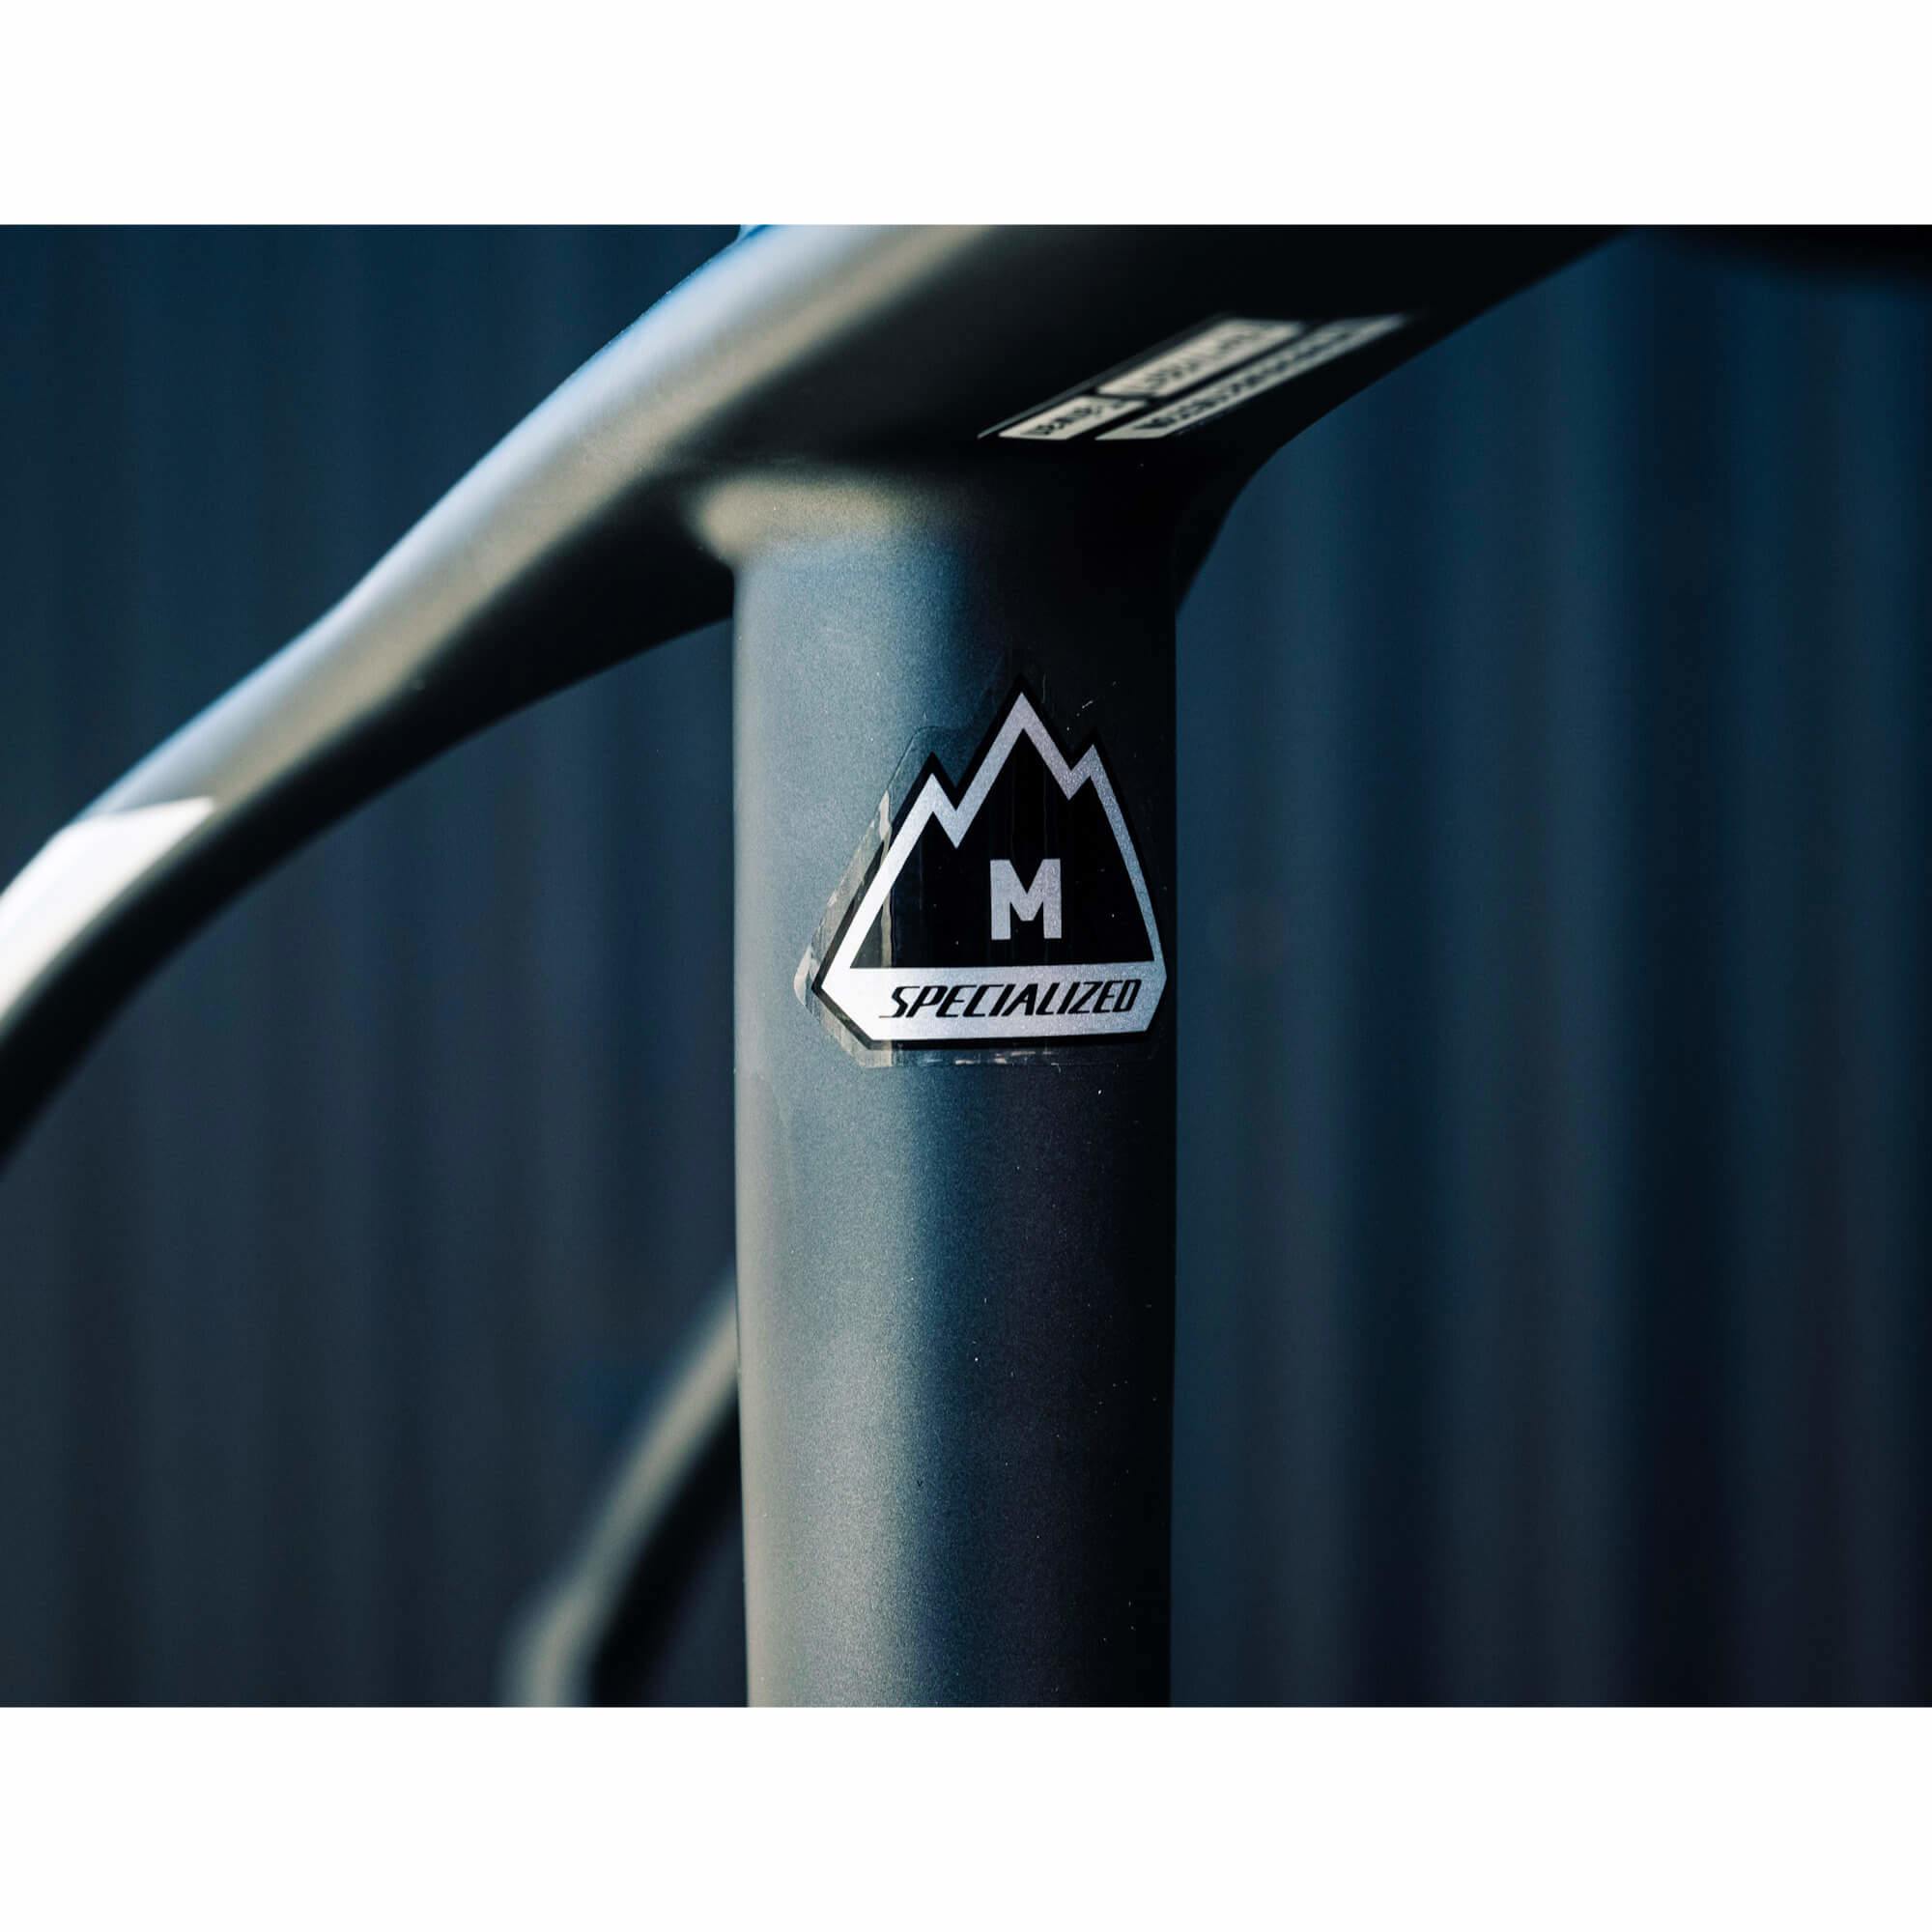 Stumpjumper Hardtail Pro Carbon World Cup 29 Frame Char/WHardtail/Flored X-Large 2016-2